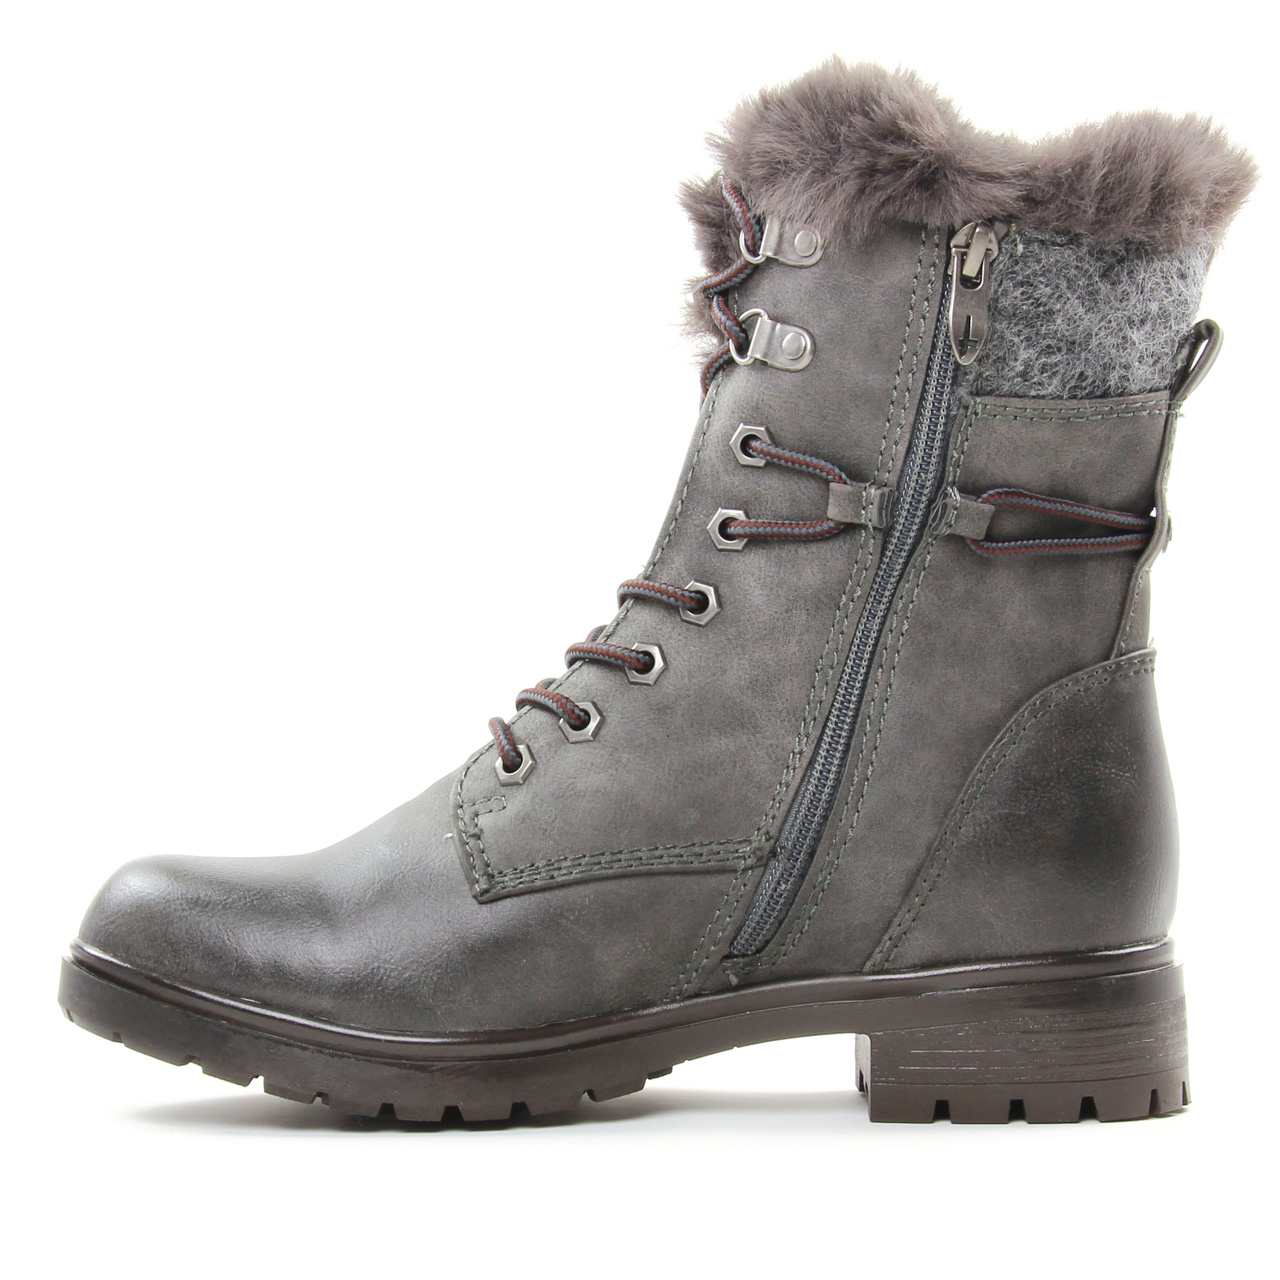 Collections Snowy Tamaris Bottines Et Boots Femme Nut